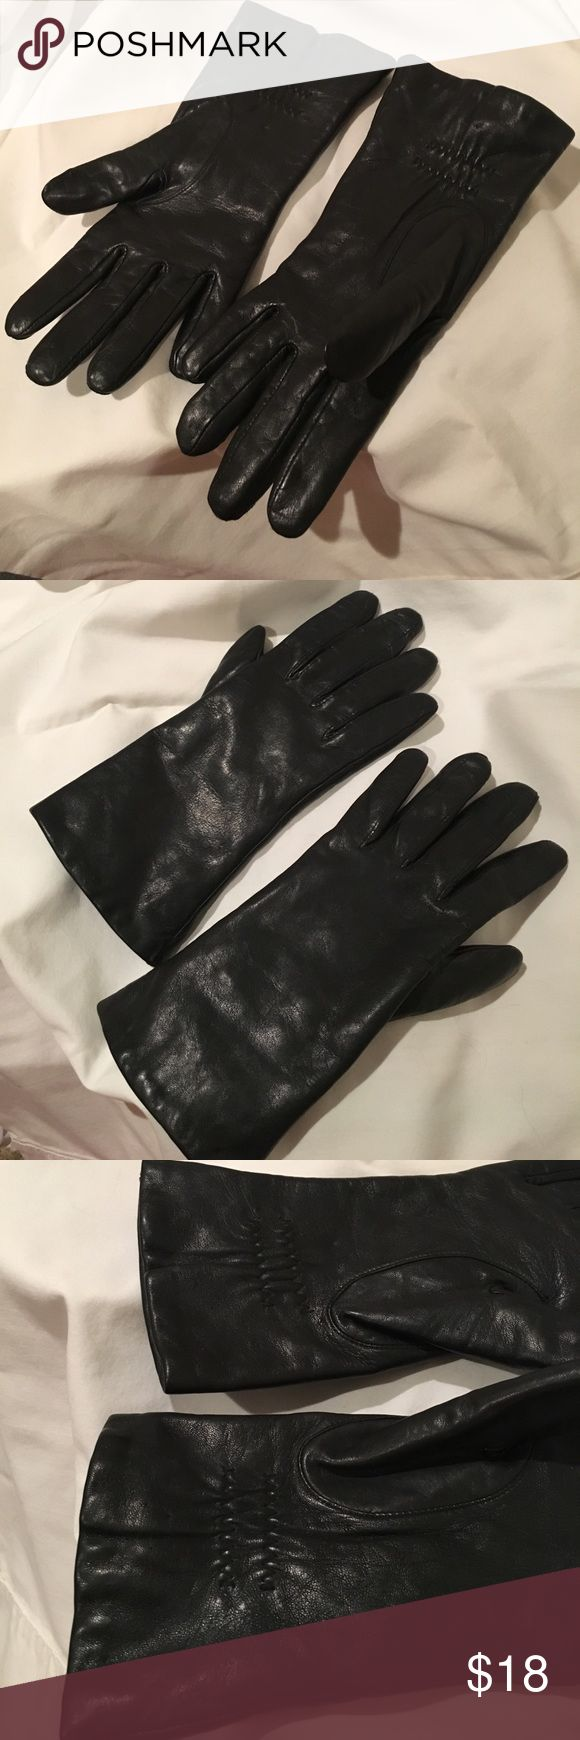 Black GENUINE LEATHER ISOTONER WEATHERSHED GLOVES Gorgeous! Black GENUINE LEATHER ISOTONER WEATHERSHED GLOVES with THINSULATE THERMAL INSULATION Lining.   Size 7  Legendary fit, unsurpassed comfort, contemporary style, attractive yet practical!  Soft, 100% gen leather combines superior warmth, durability & sleek style. Lining keep hands warm & comfy in cold. Special interior fabric feels SILKY & super soft against skin.  Gathered wrist allows custom fit.  Quality ISOTONER GUARANTEE! Made…